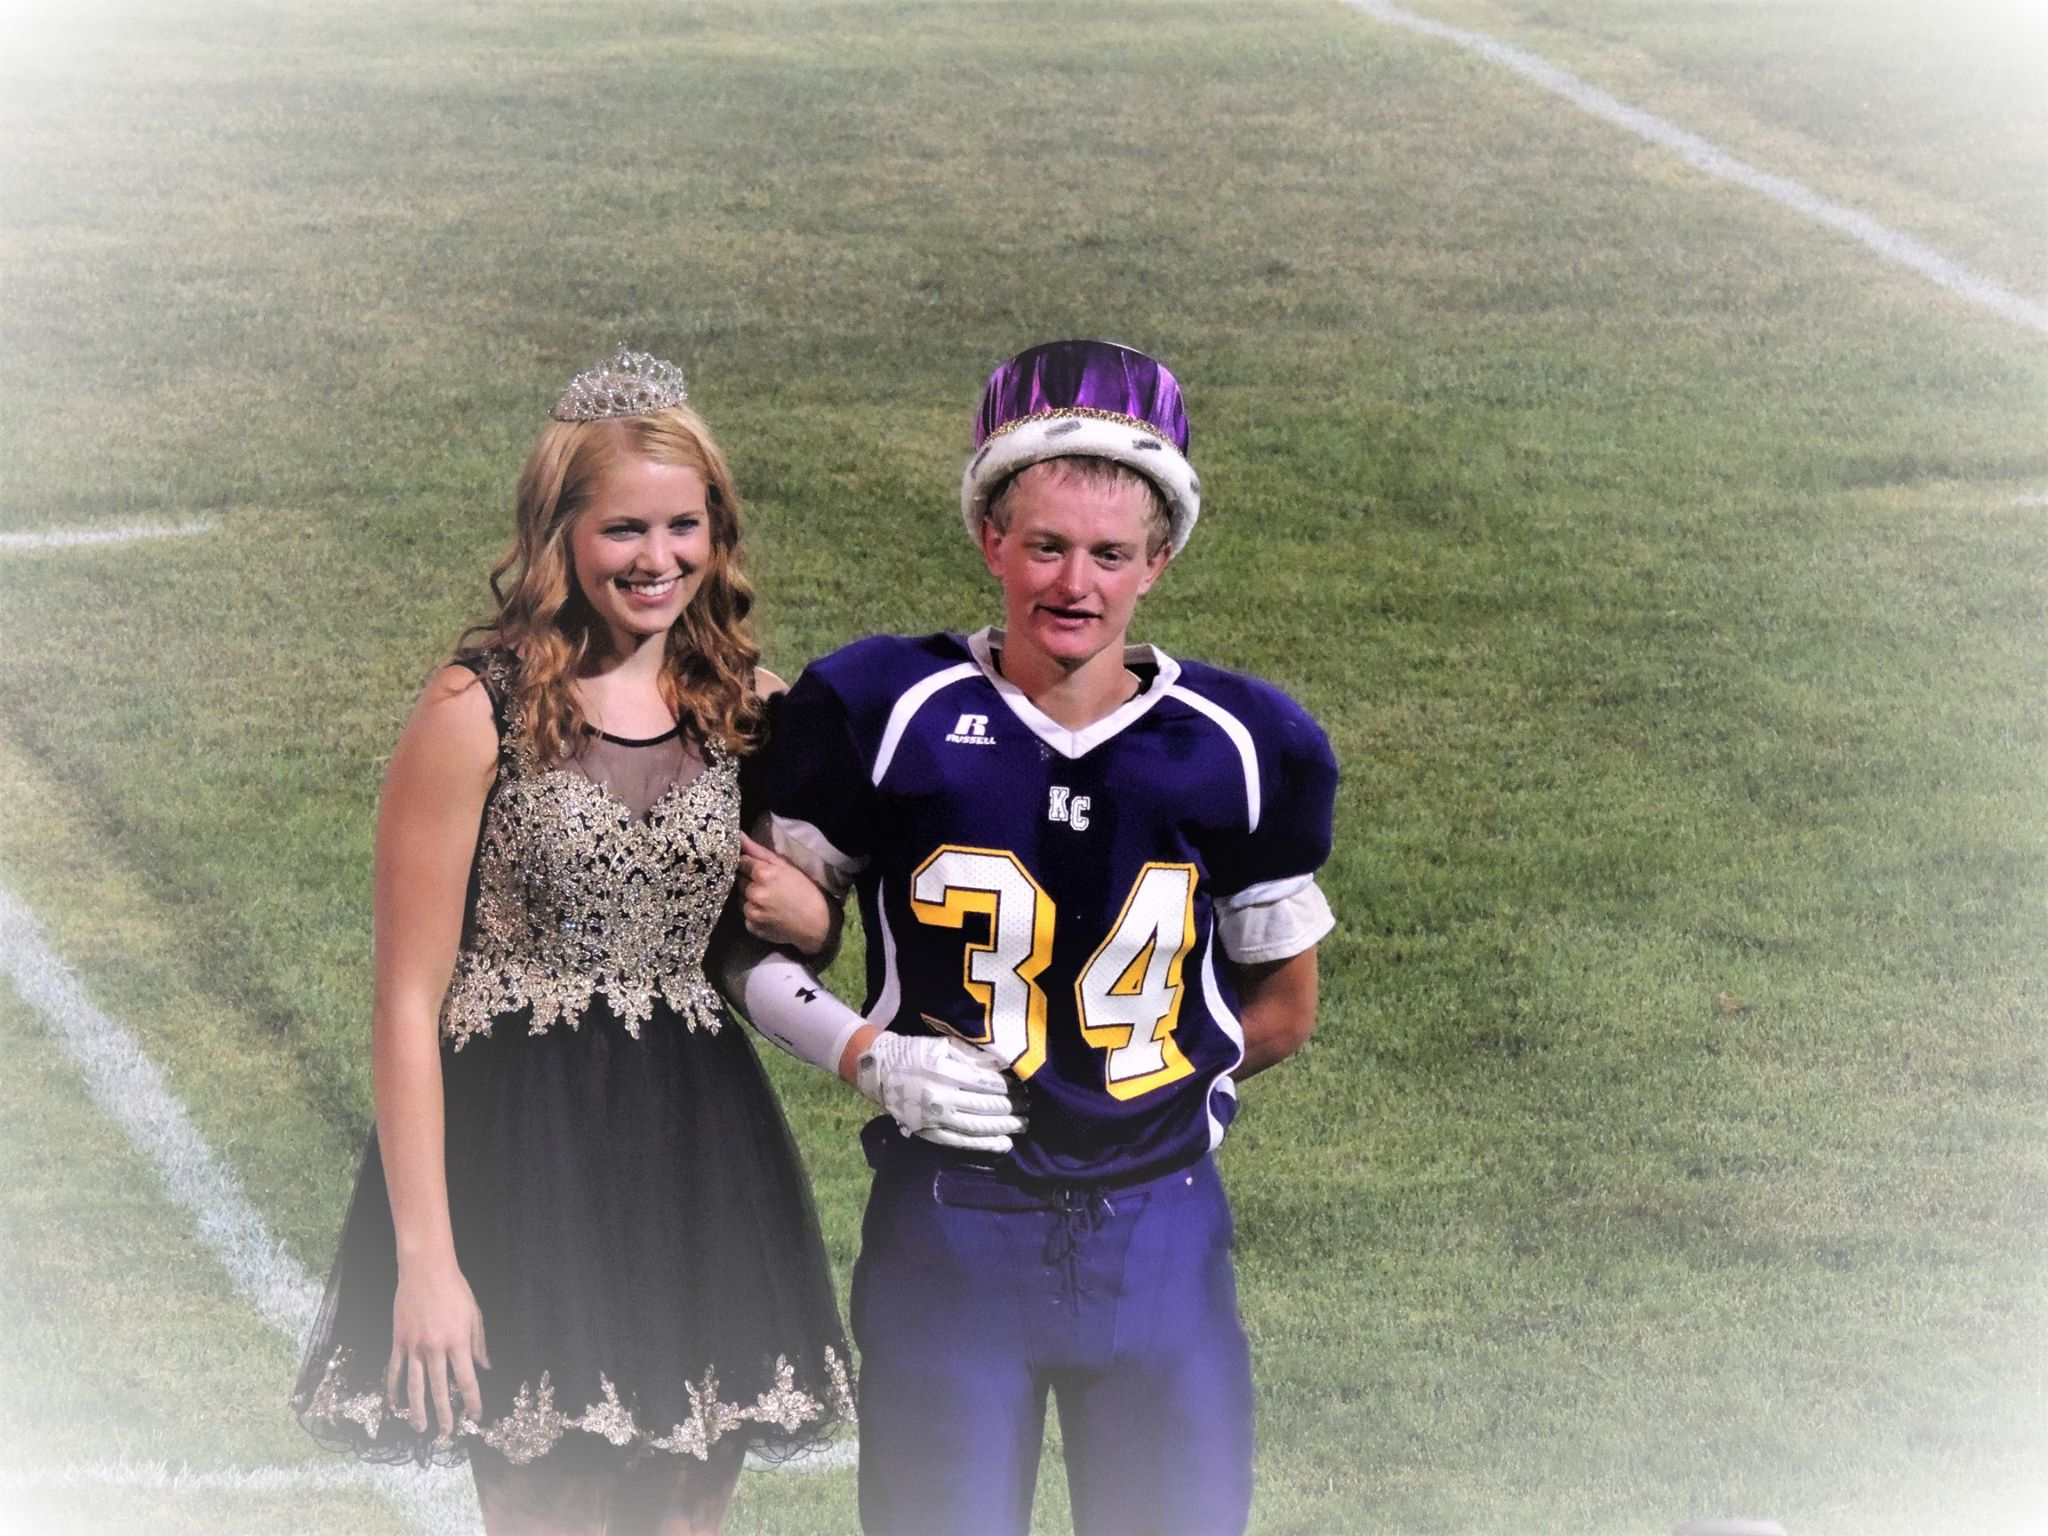 At the football game Josie Hornung was crowned Homecoming Queen and Chris Bryan was crowned King.